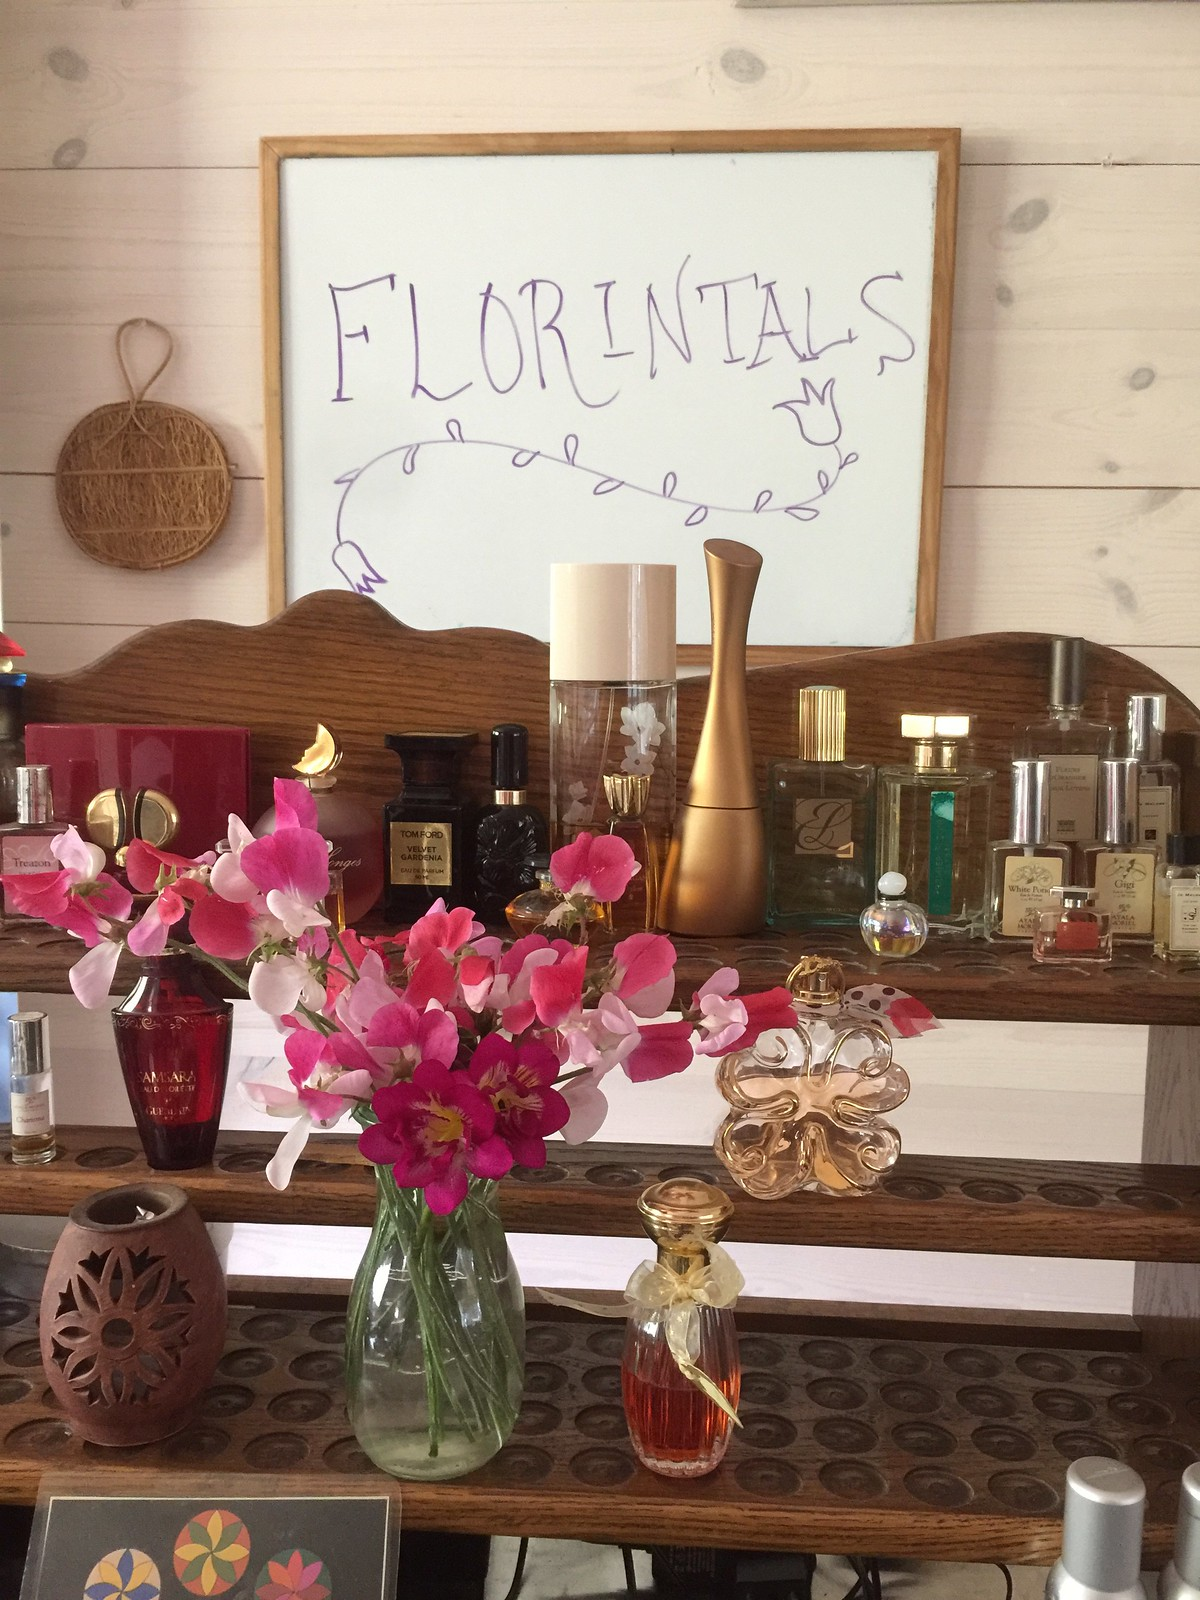 Florientals Week-Long Course, March 31 - April 4, 2019